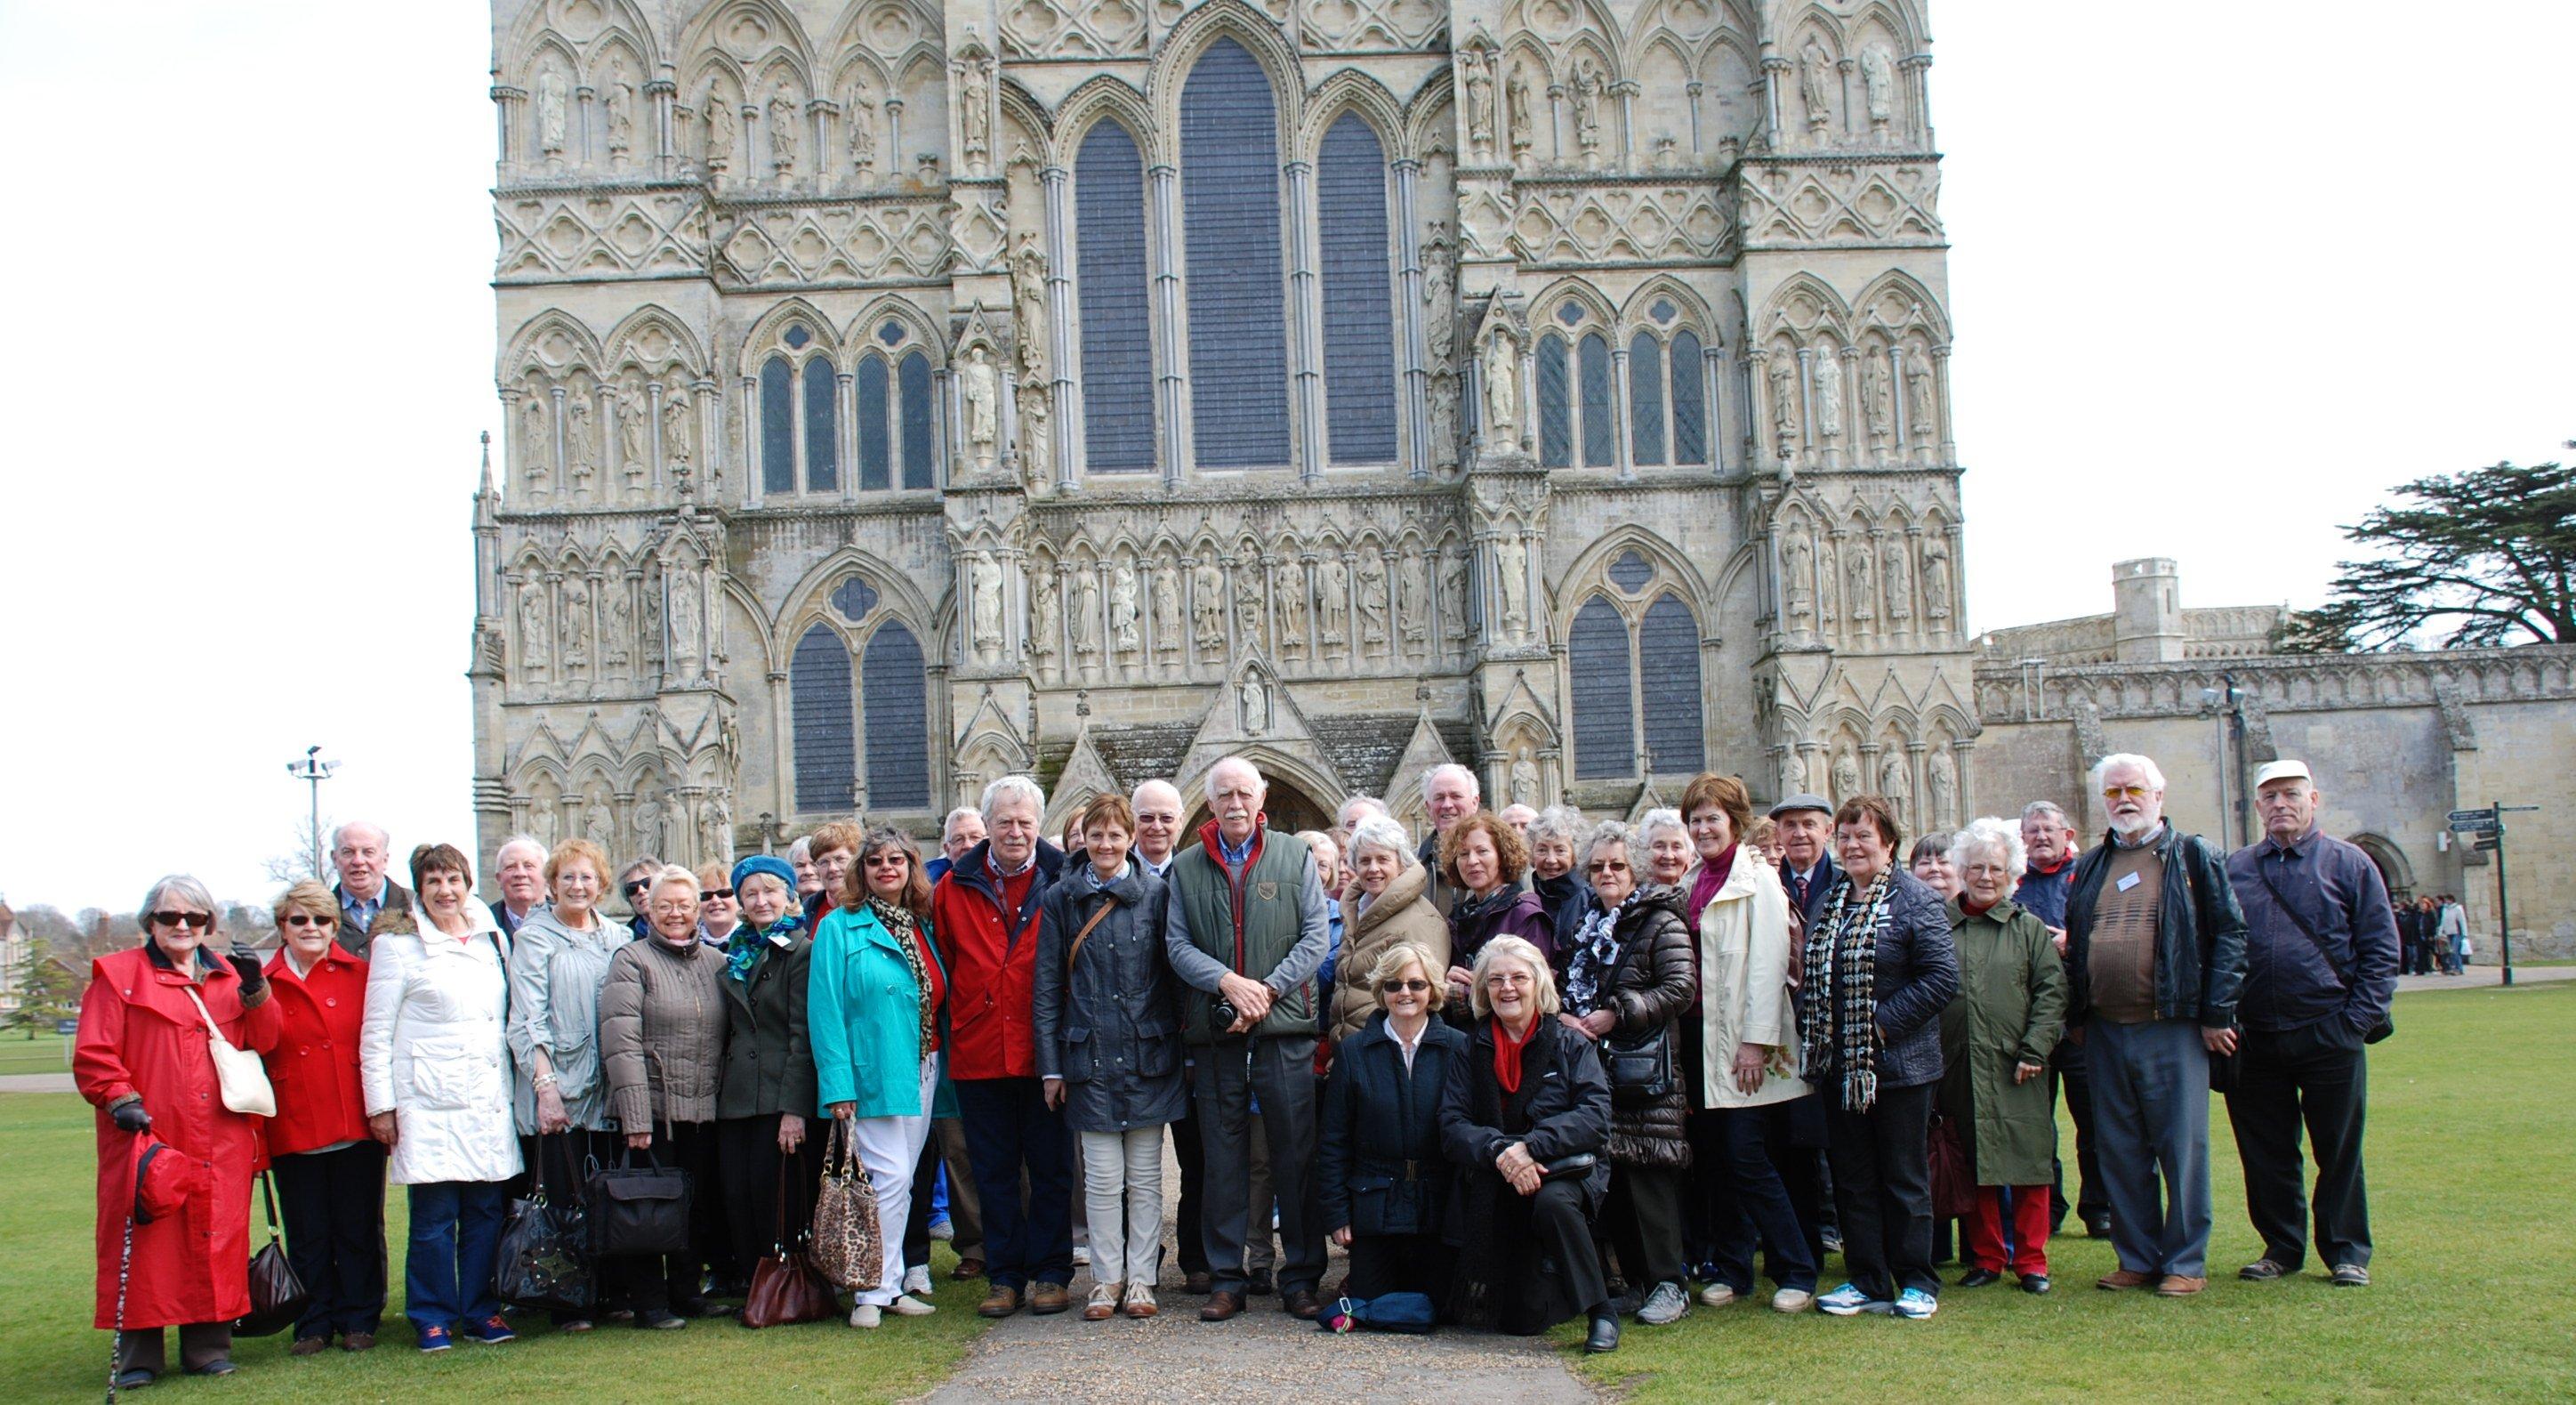 Outside Salisbury Cathedral